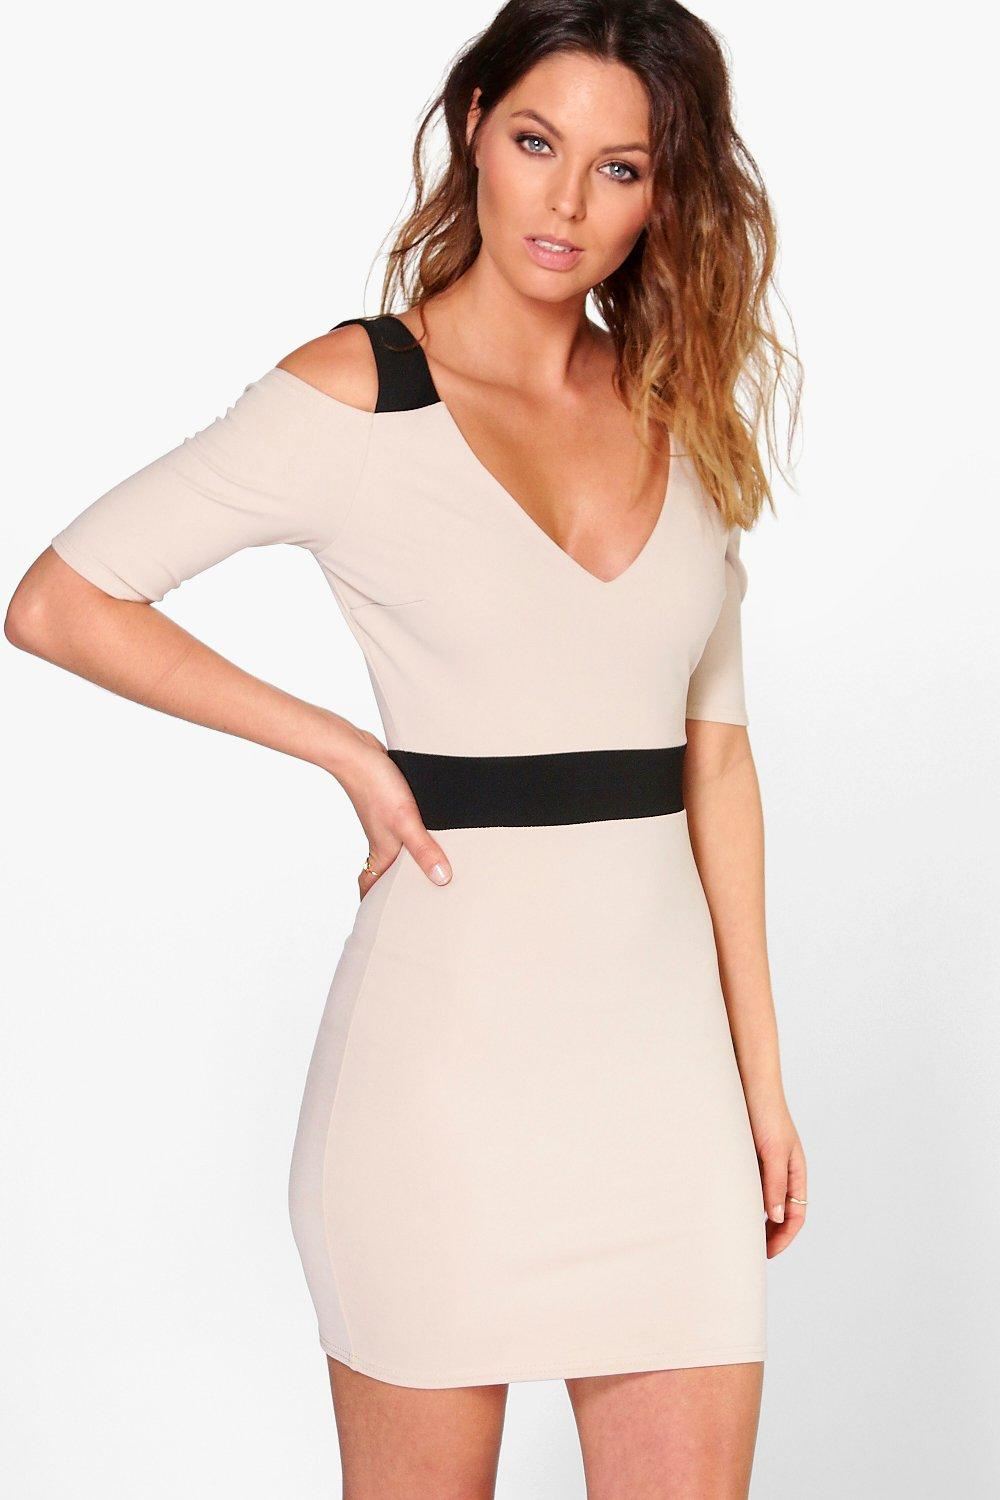 Adria Open Shoulder Contrast Bodycon Dress